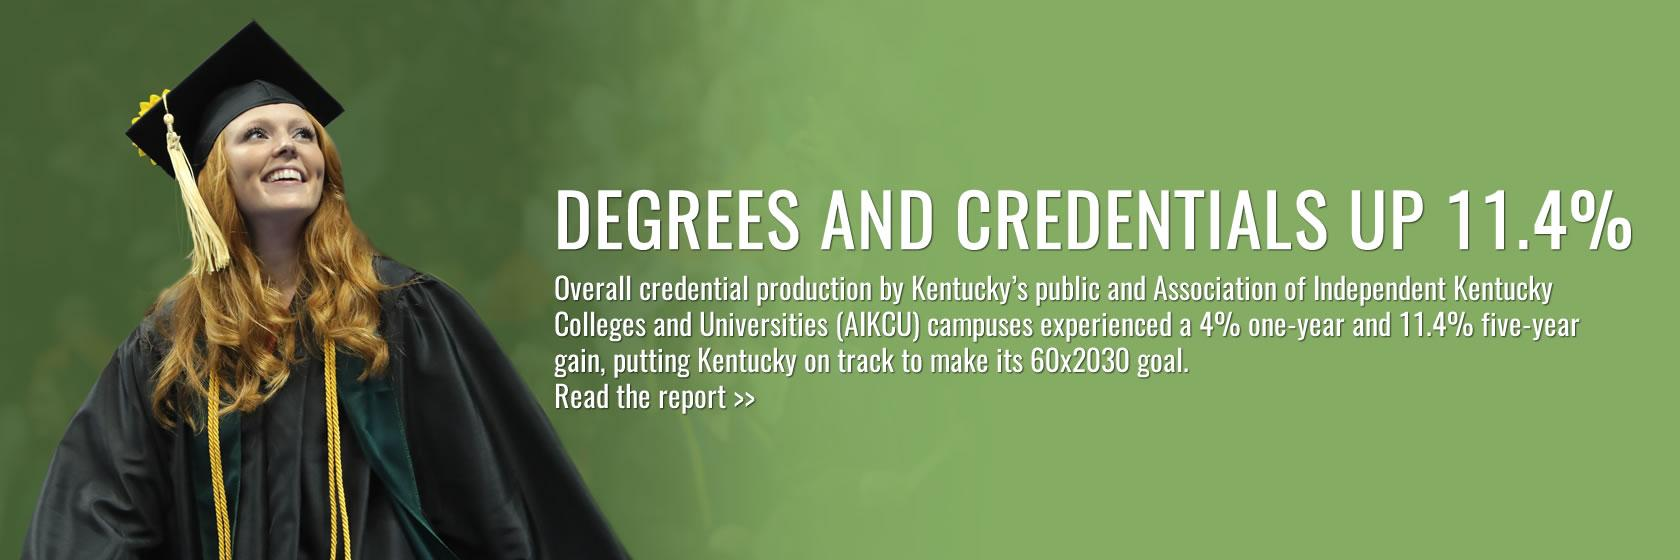 View the Council's degree and credential production report.